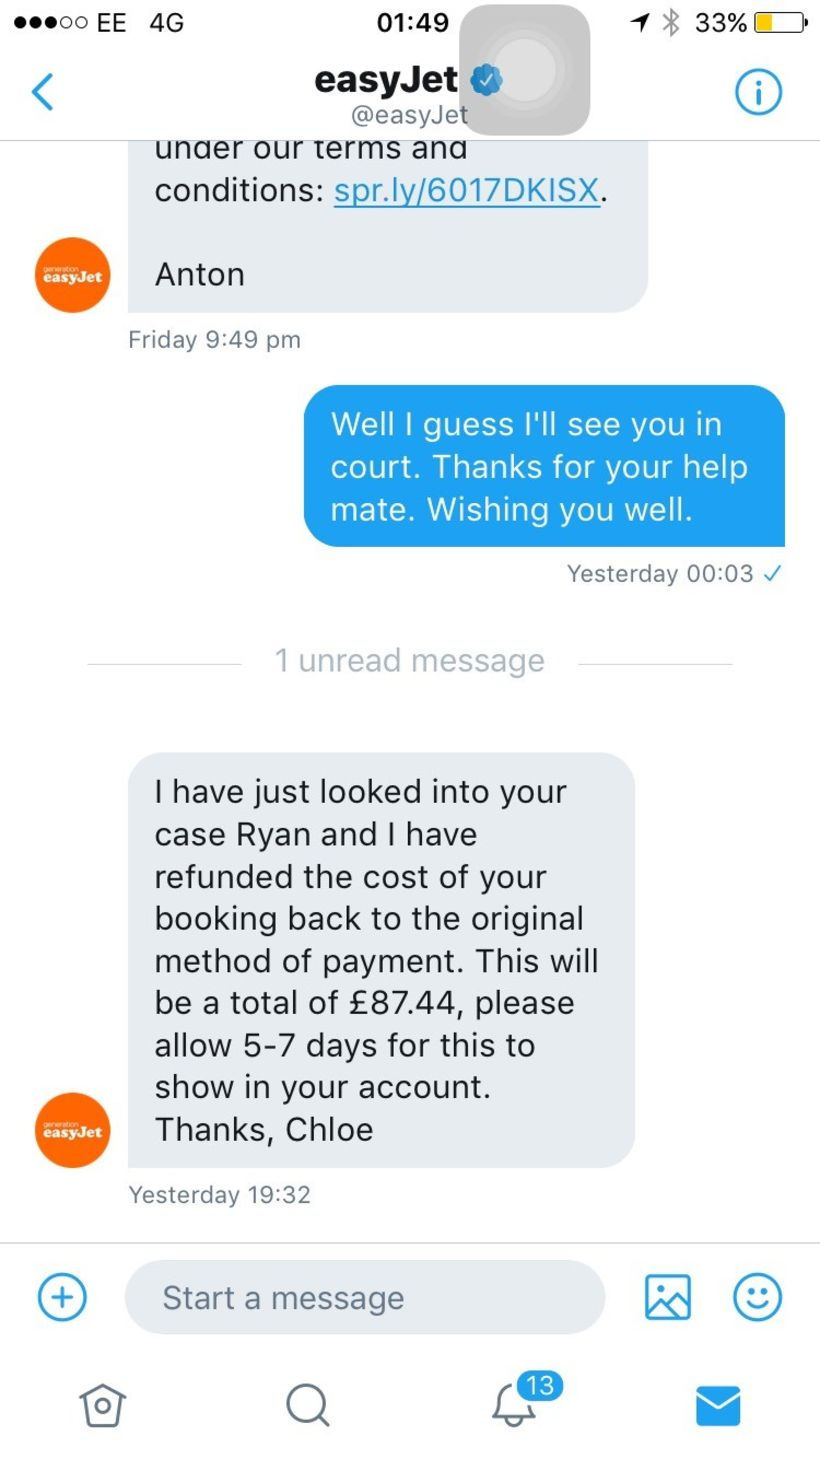 ryan williams easyjet tweet 2